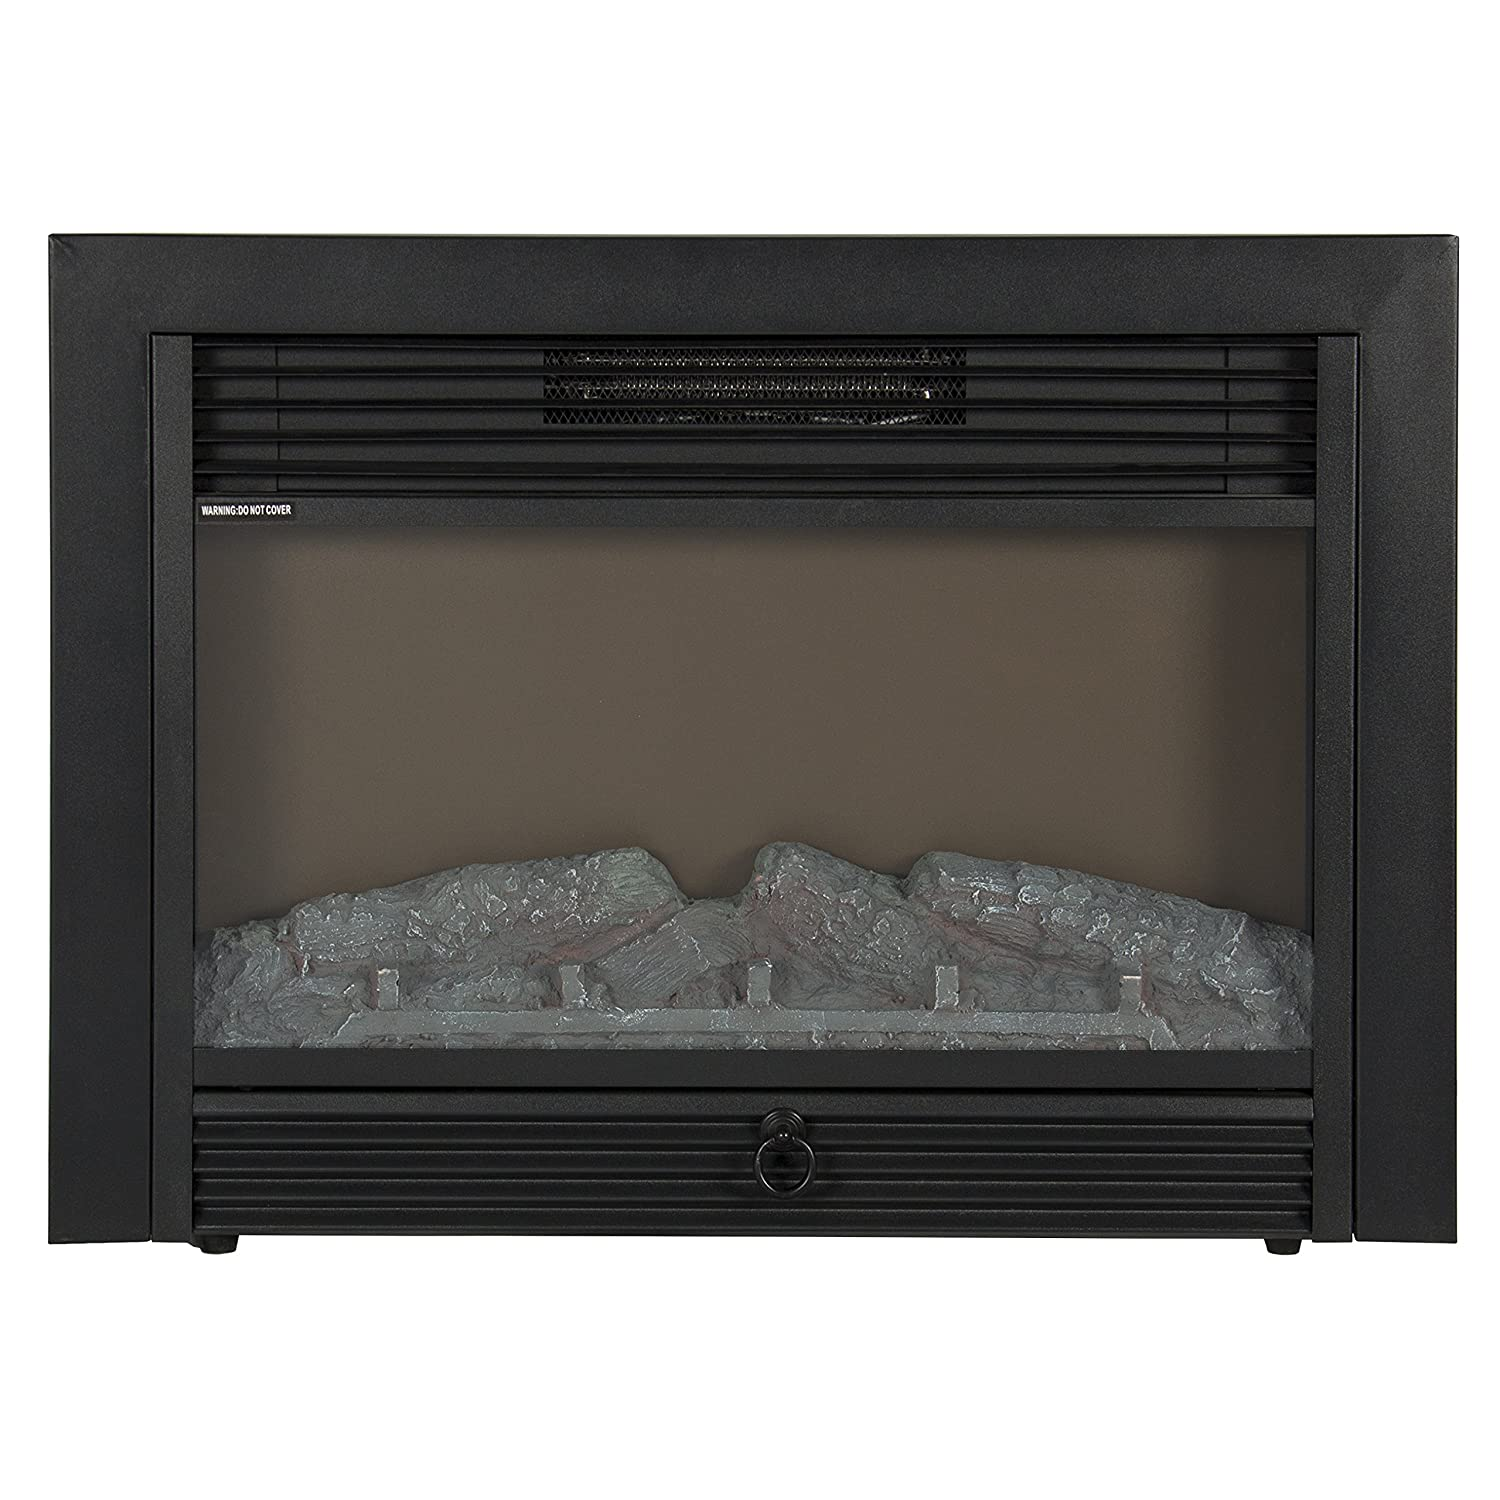 Amazoncom Best Choice Products Sky1826 Embedded Fireplace Electric Insert Heater